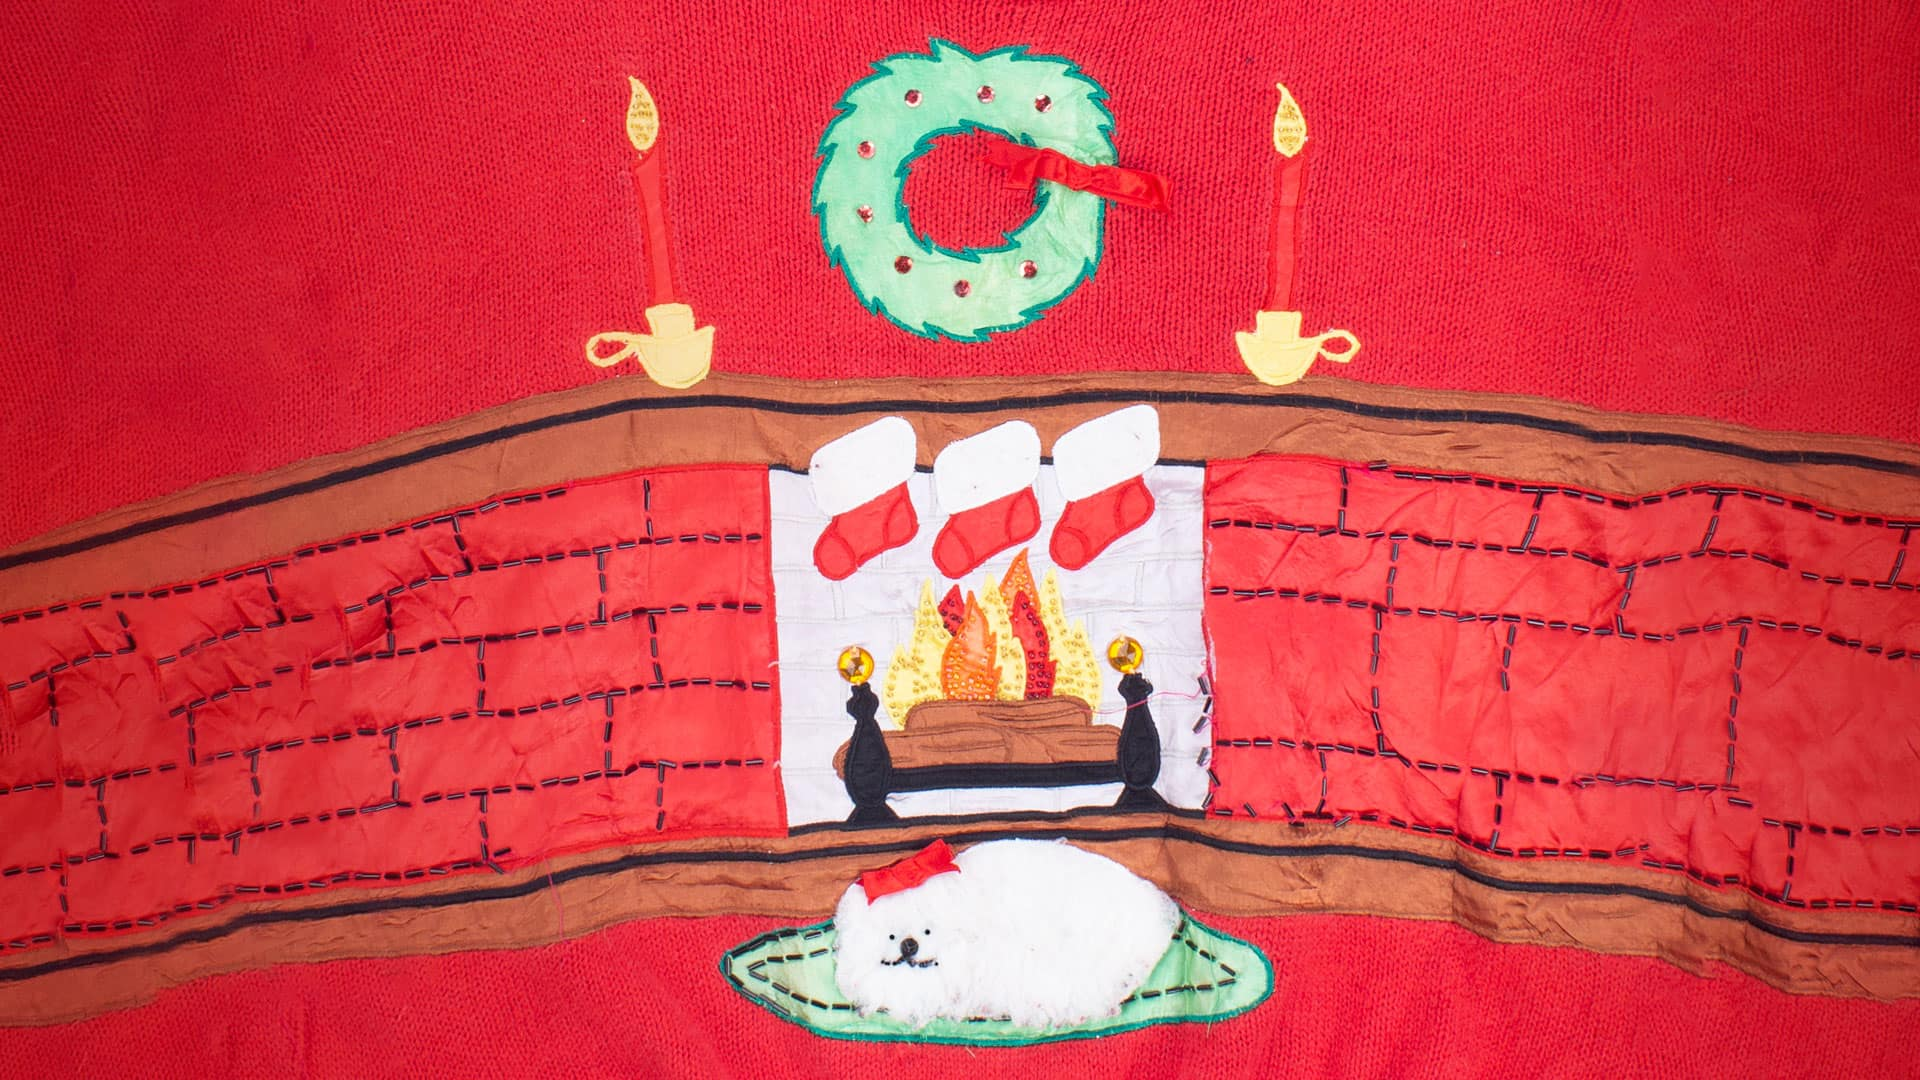 Ugly Christmas sweater featuring a fireplace with stockings hung and a wreath. There is a dog sitting in front of the fire with a red bow on its head.